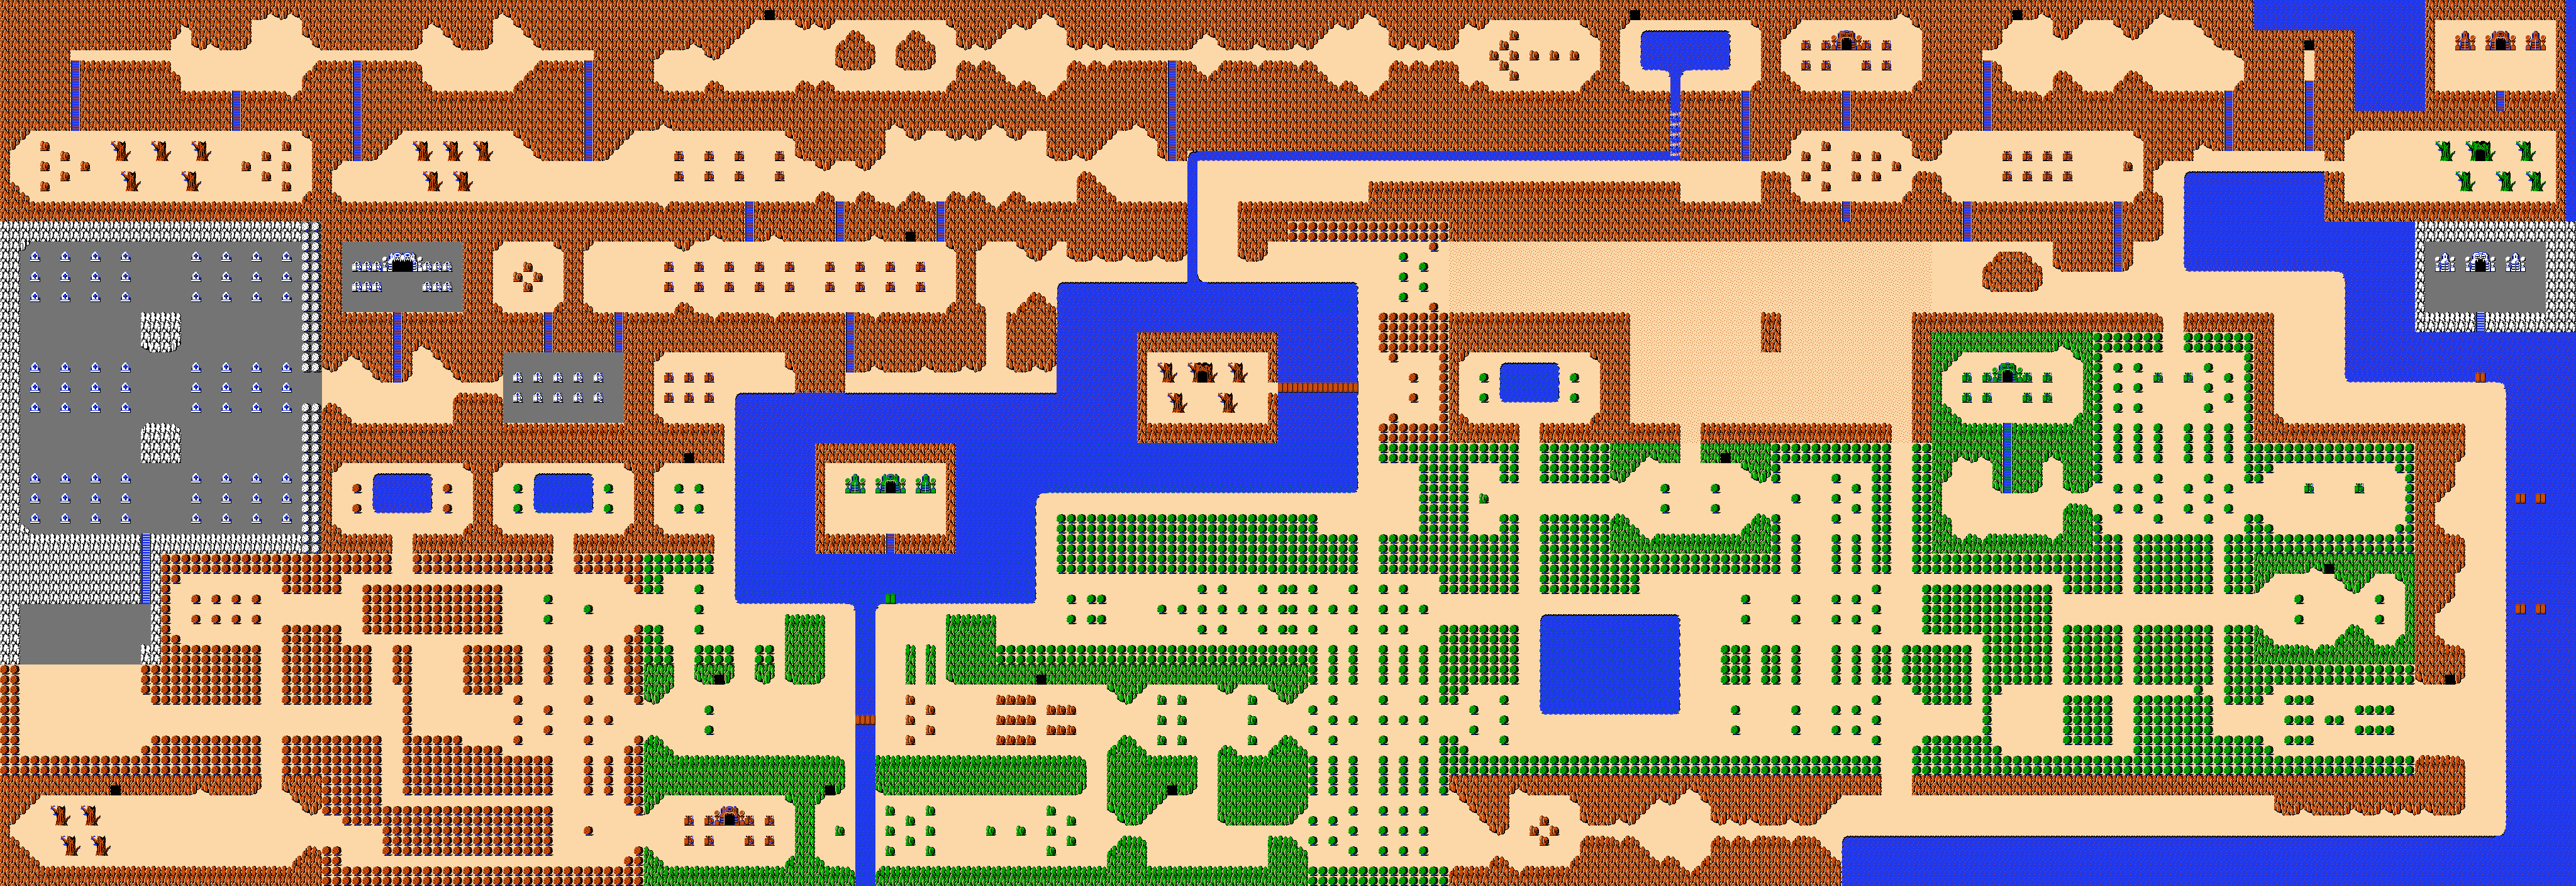 A Link to the Past | TechCrunch Zelda Link To The Past World Map on zelda a link to the past map background, link to the past turtle rock map, spirit tracks zelda a link to the past map, zelda dark world map, legend of zelda link to the past dungeon map, zelda skyward sword world map, a link to the past dark palace map, a link to the past overworld map, link's awakening world map, zelda 1 secrets, link to the past item map, nes zelda world map,